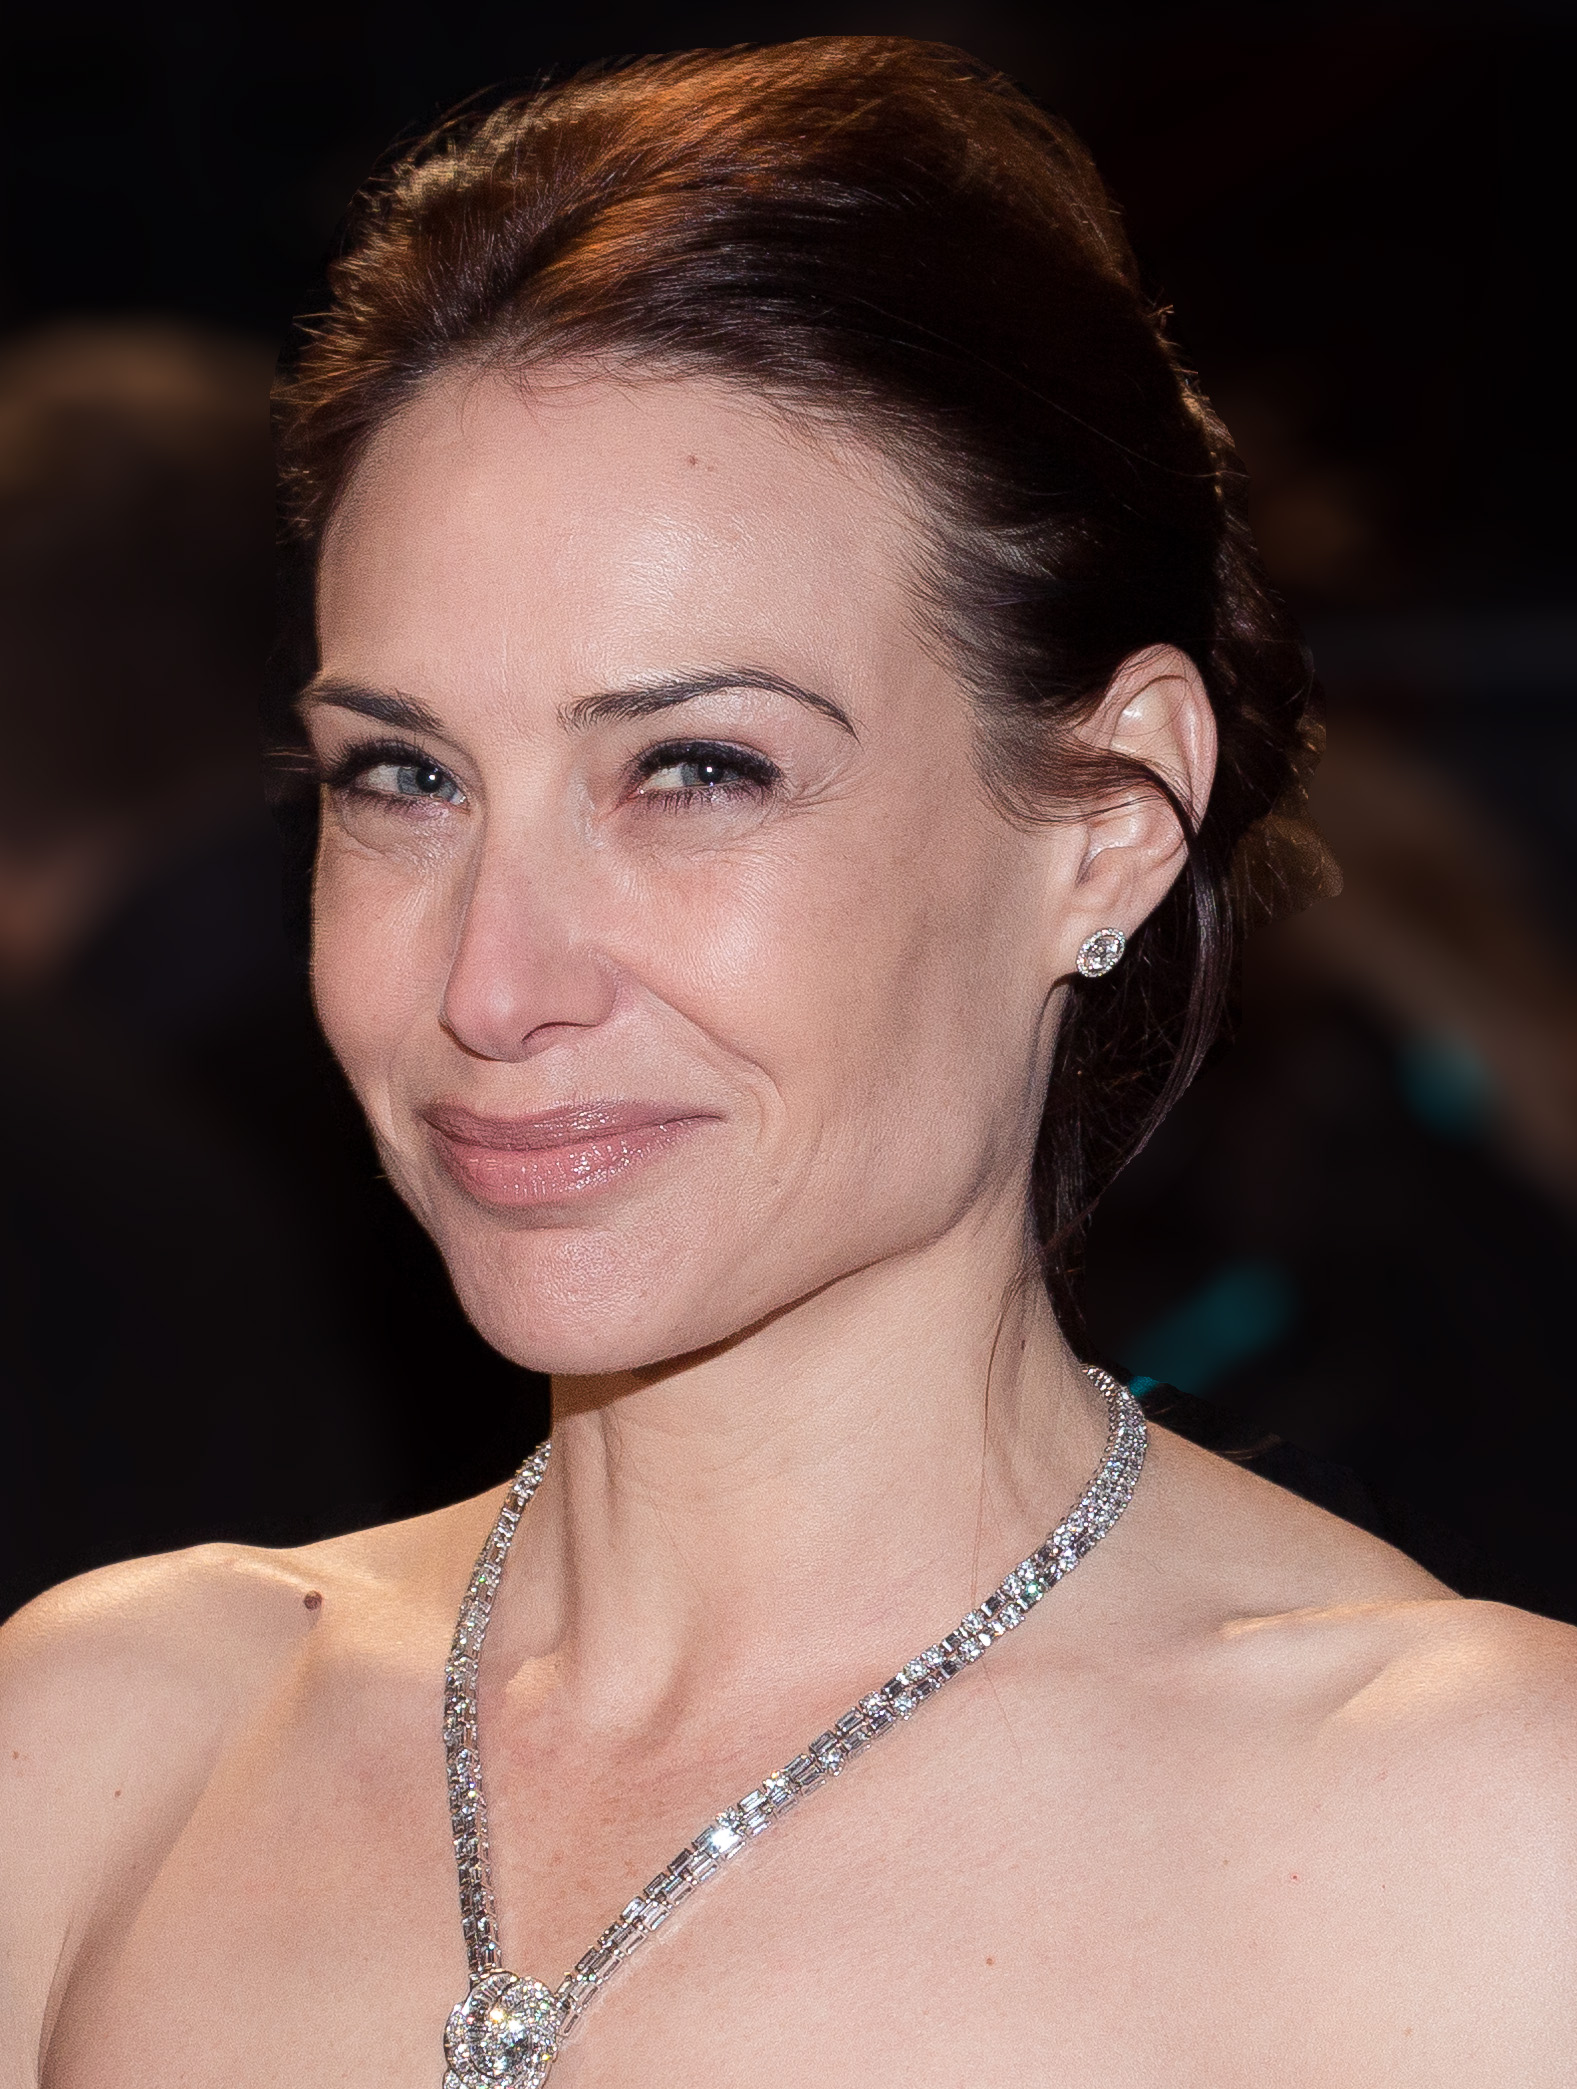 Claire Forlani earned a  million dollar salary - leaving the net worth at 5 million in 2017